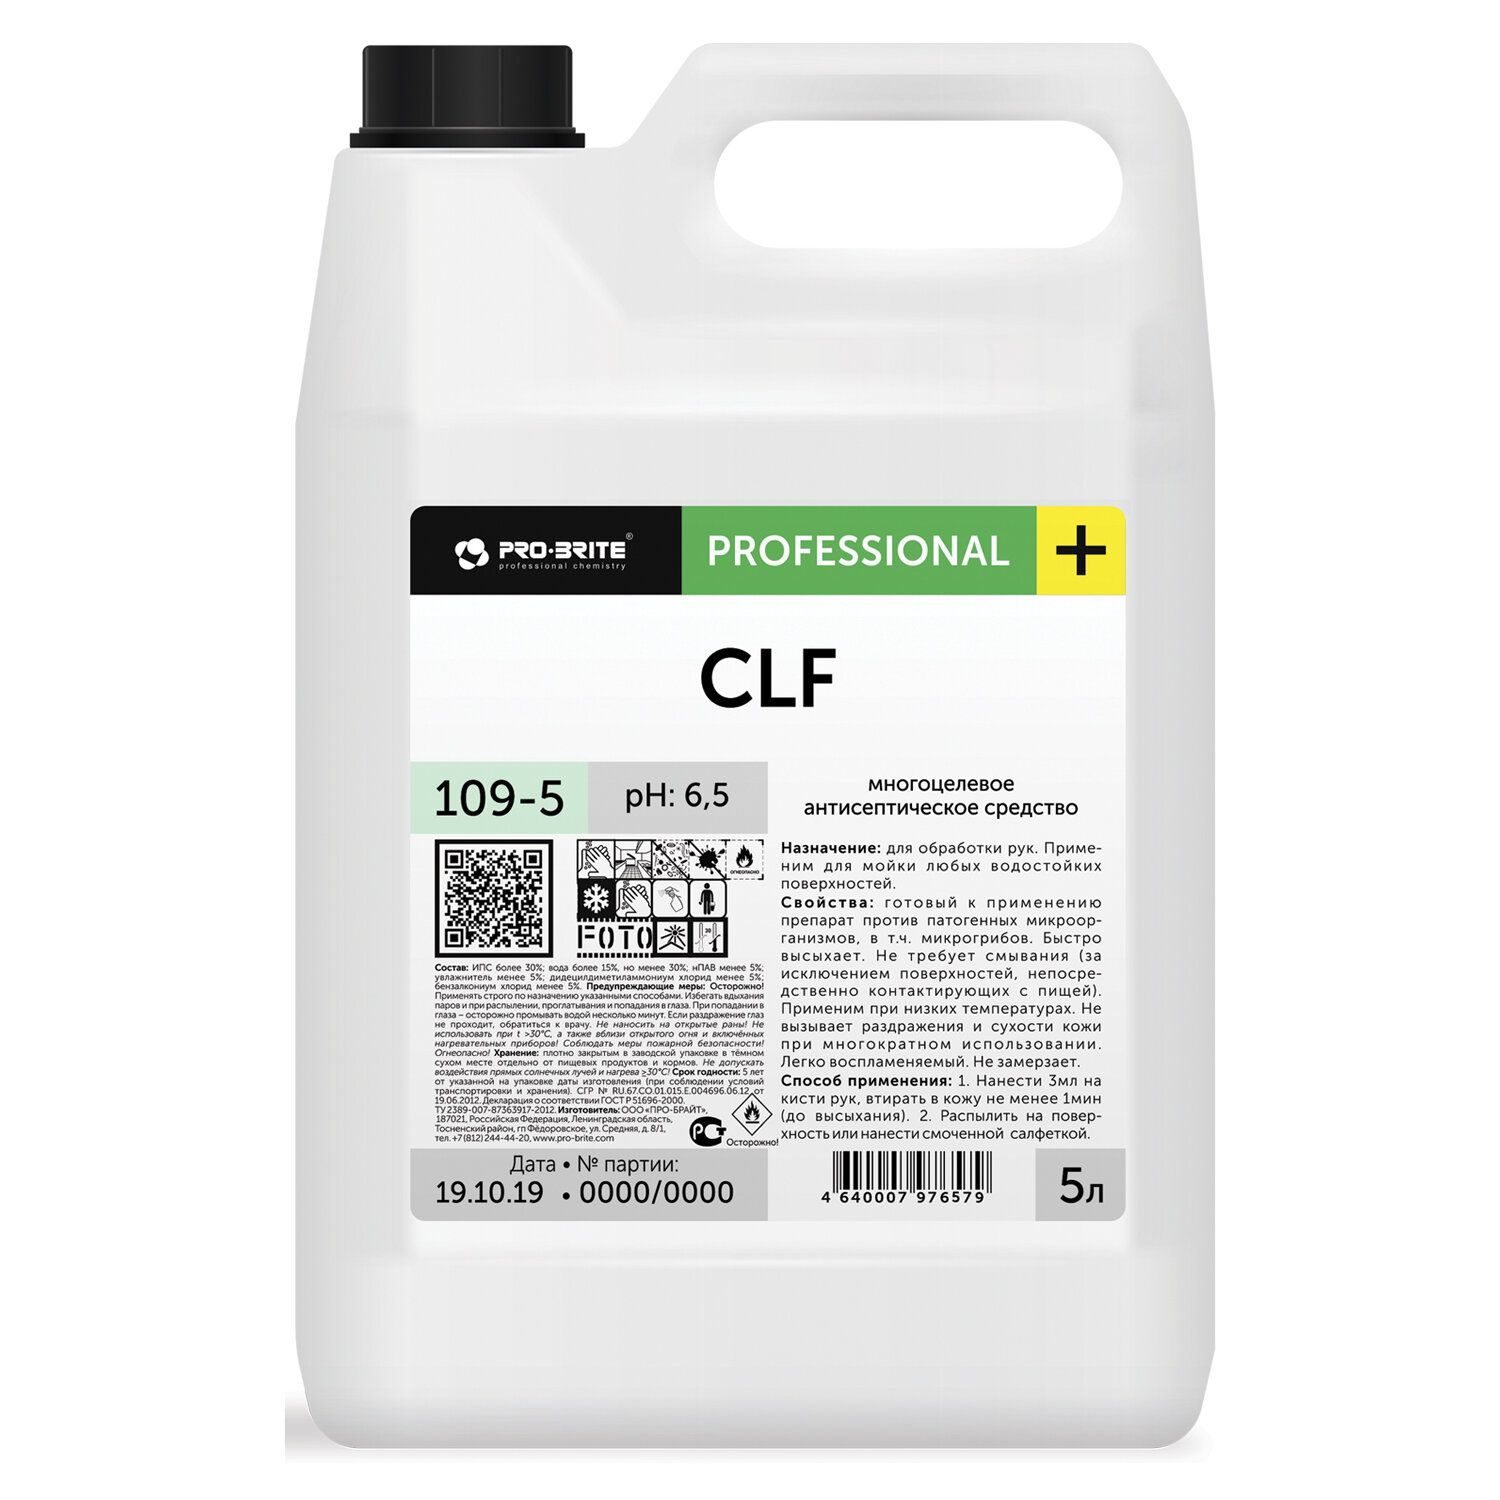 PRO-BRITE / Skin disinfectant antiseptic, alcohol-based (65%) CLF, ready-made solution 5 l